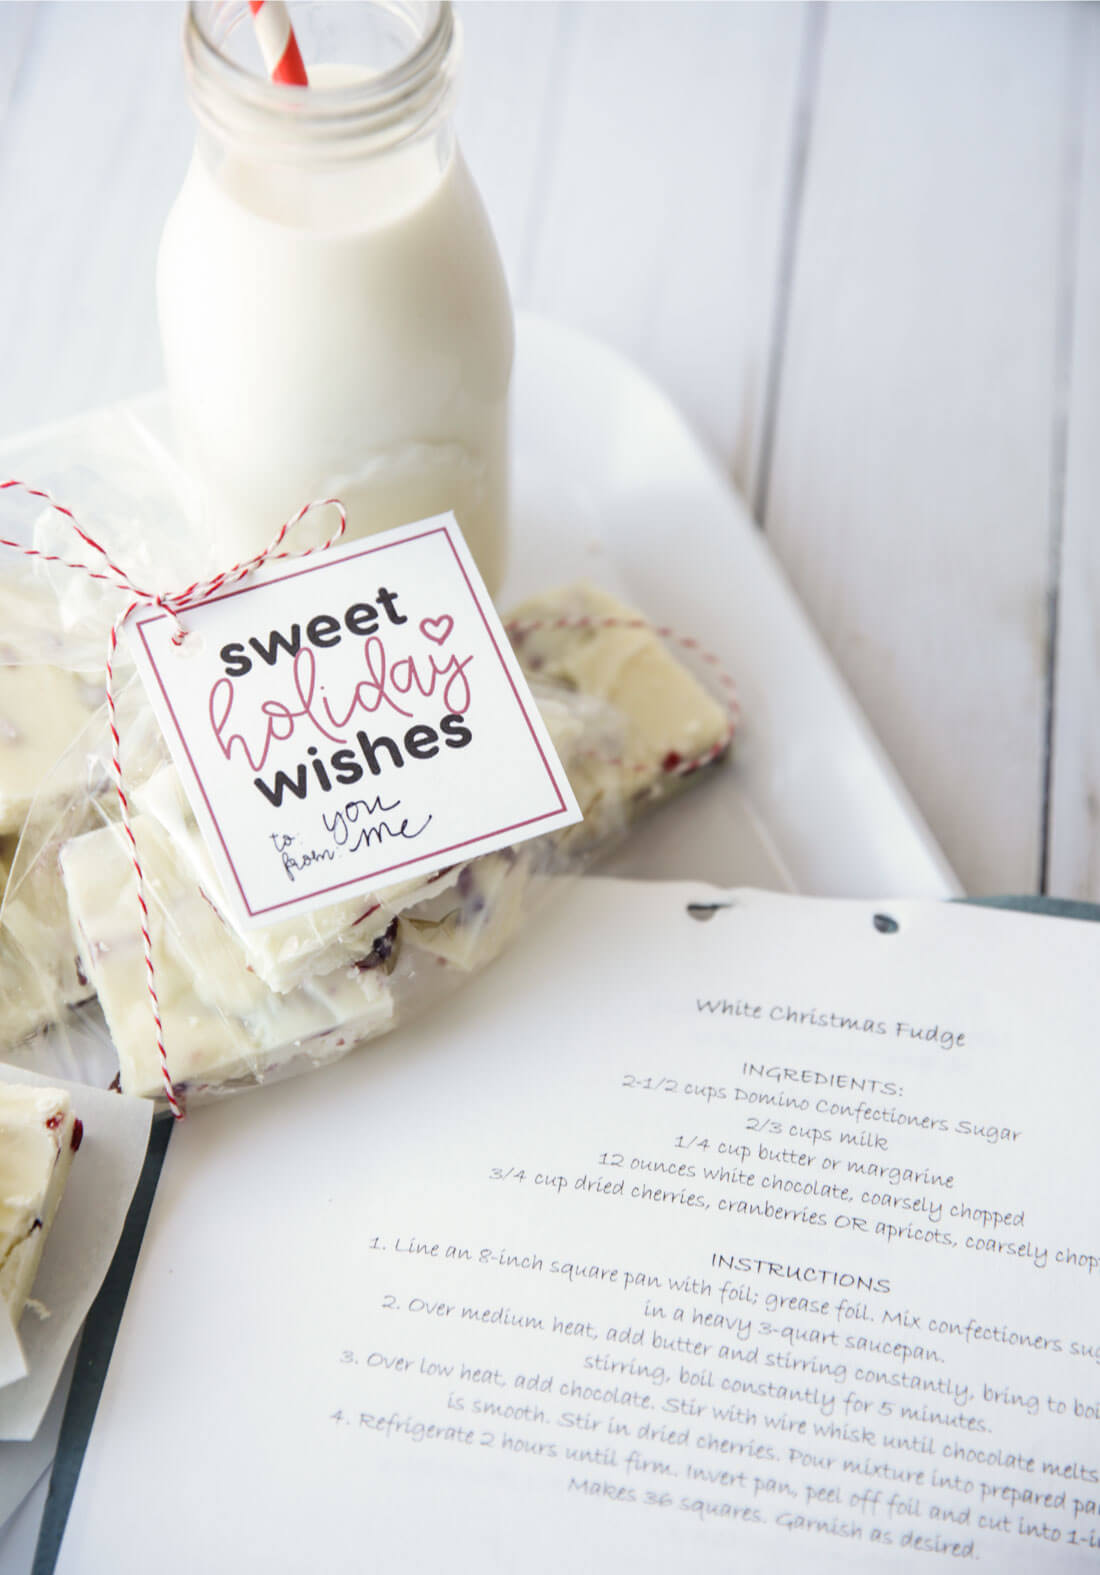 Sweet holiday wishes printable tag and White Christmas Fudge - perfect gift for friends and neighbors.